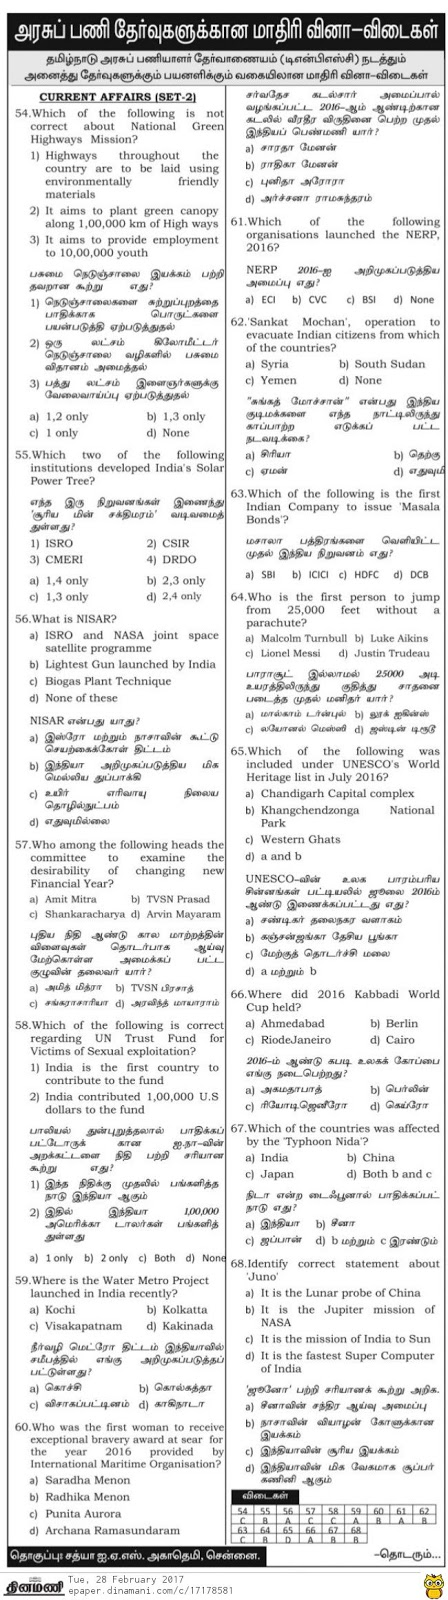 TNPSC Current Affairs Questions and Answers (Dinamani) 28 02 2017